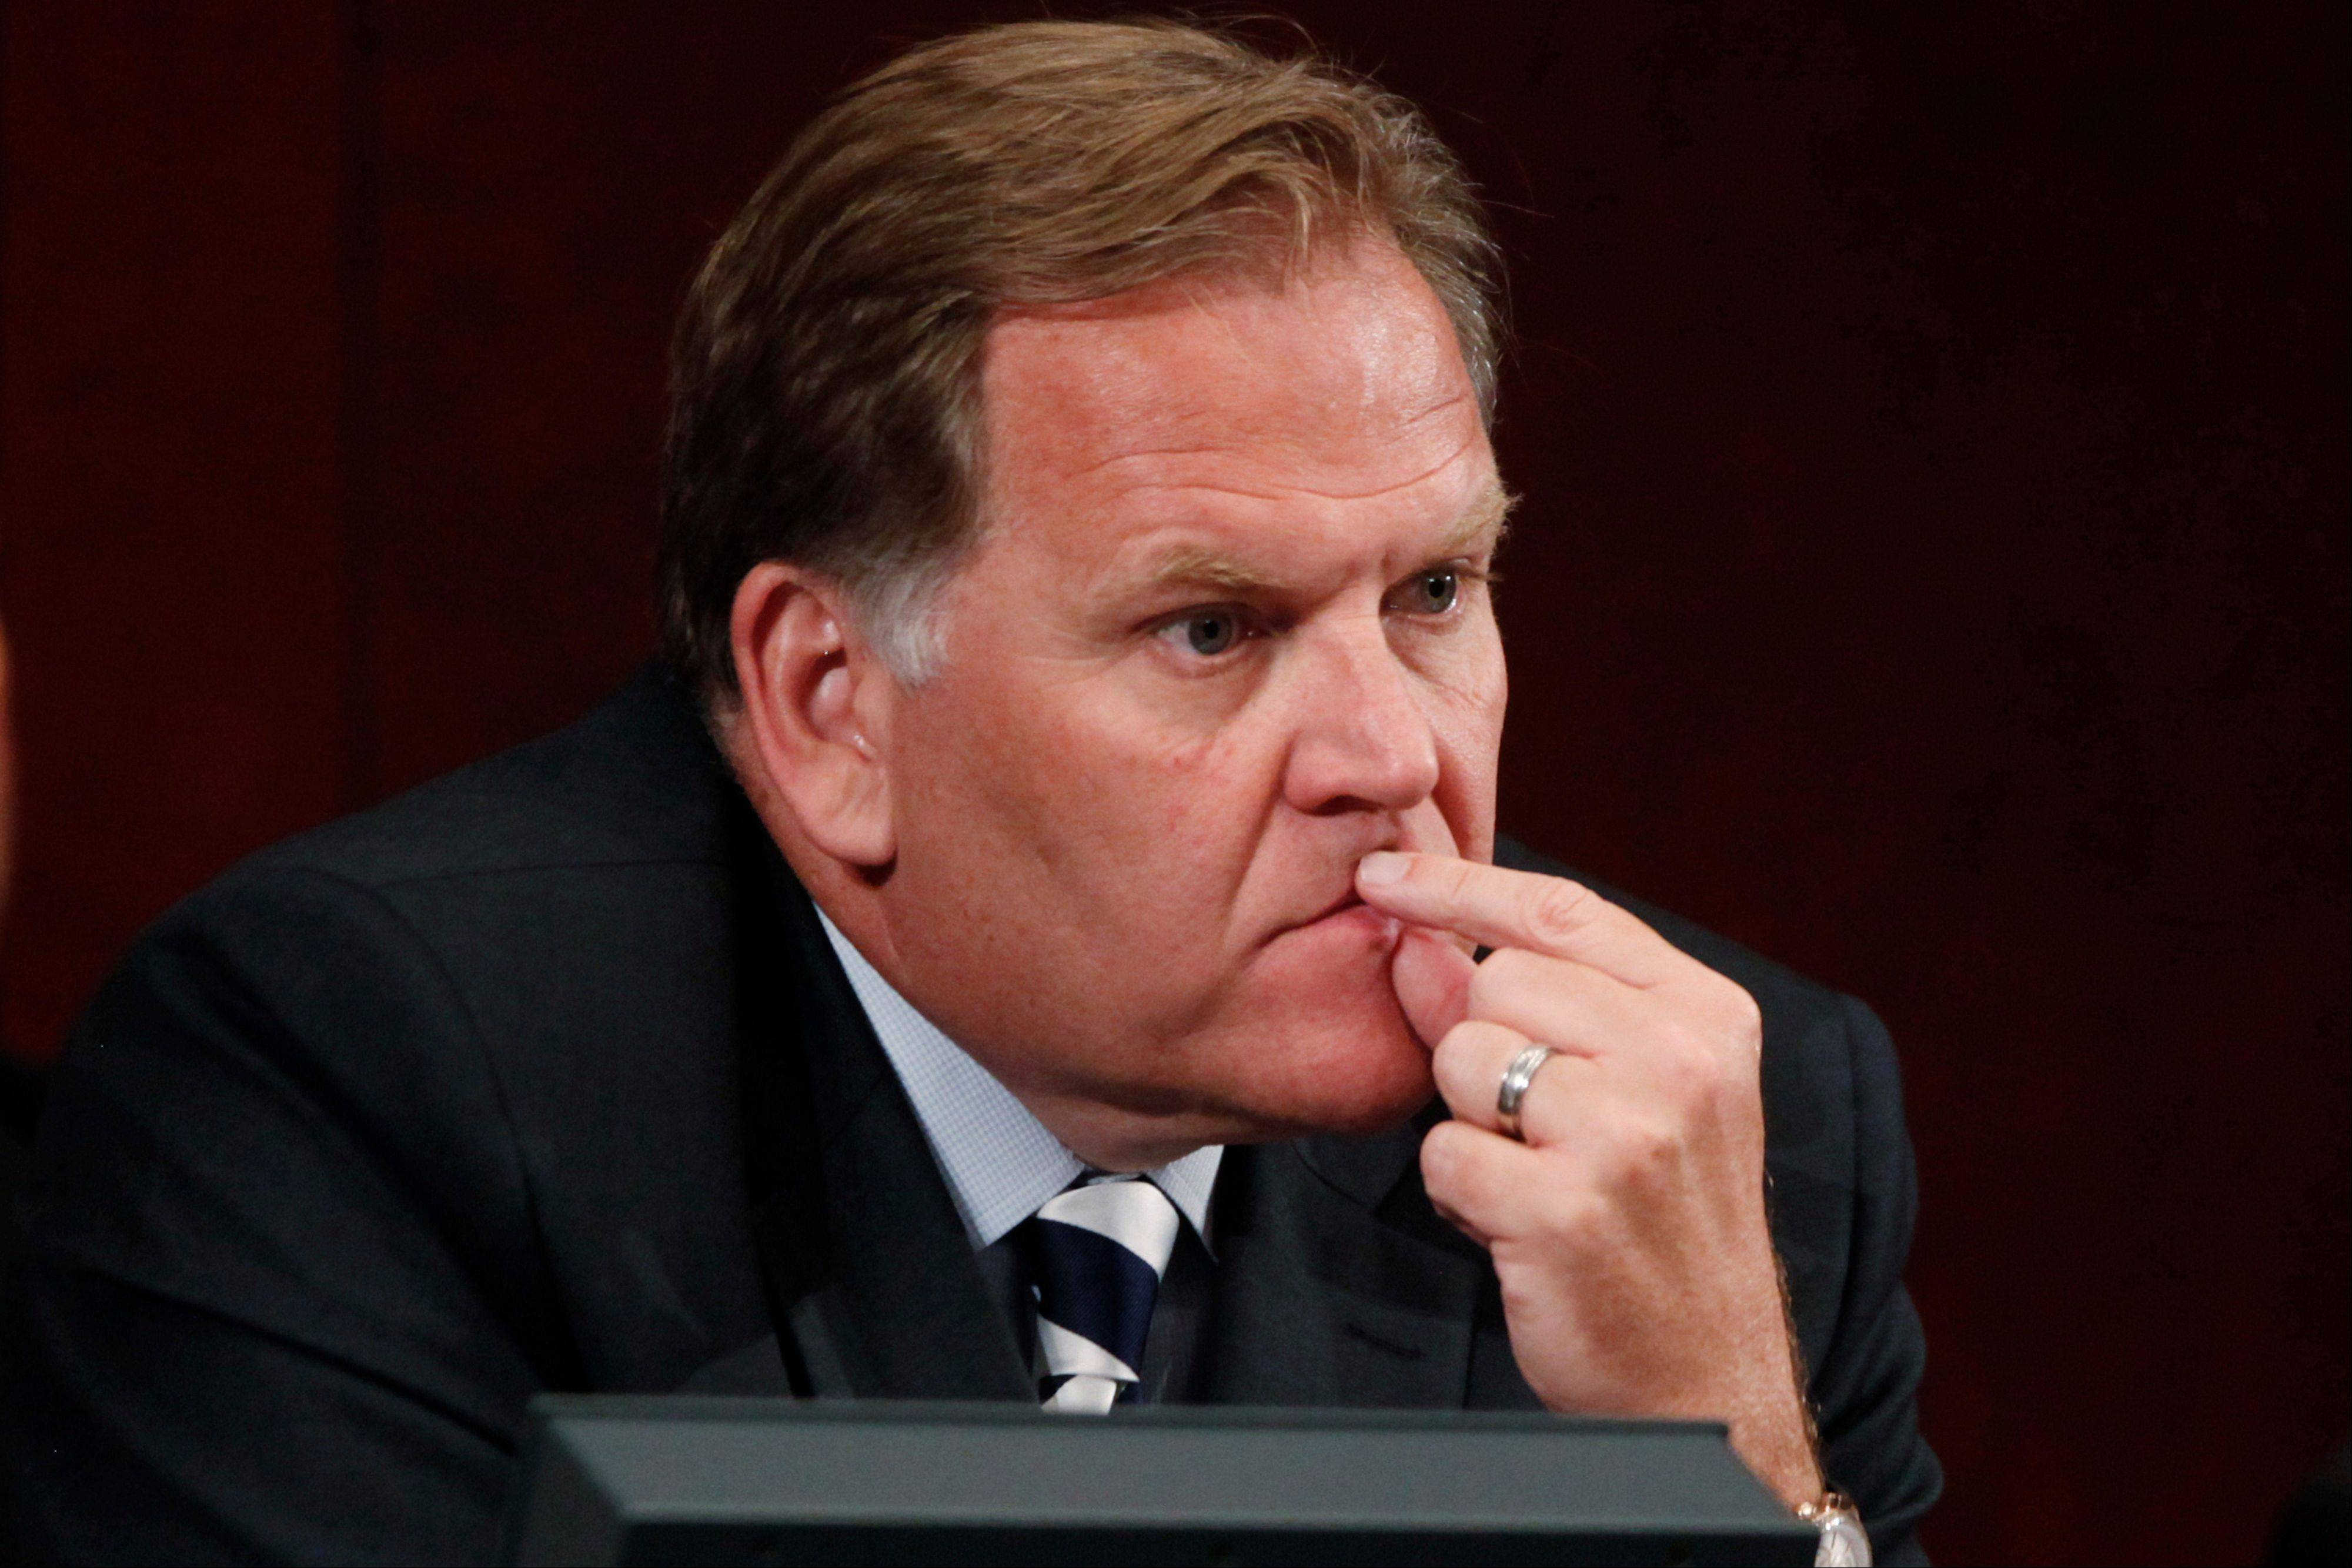 Republican Rep. Mike Rogers of Michigan, chairman of the House Intelligence Committee, said Edward Snowden�s release of classified documents jeopardized the safety of troops in Afghanistan and gave nations such as China and Russia valuable insight into how America�s intelligence services operate.